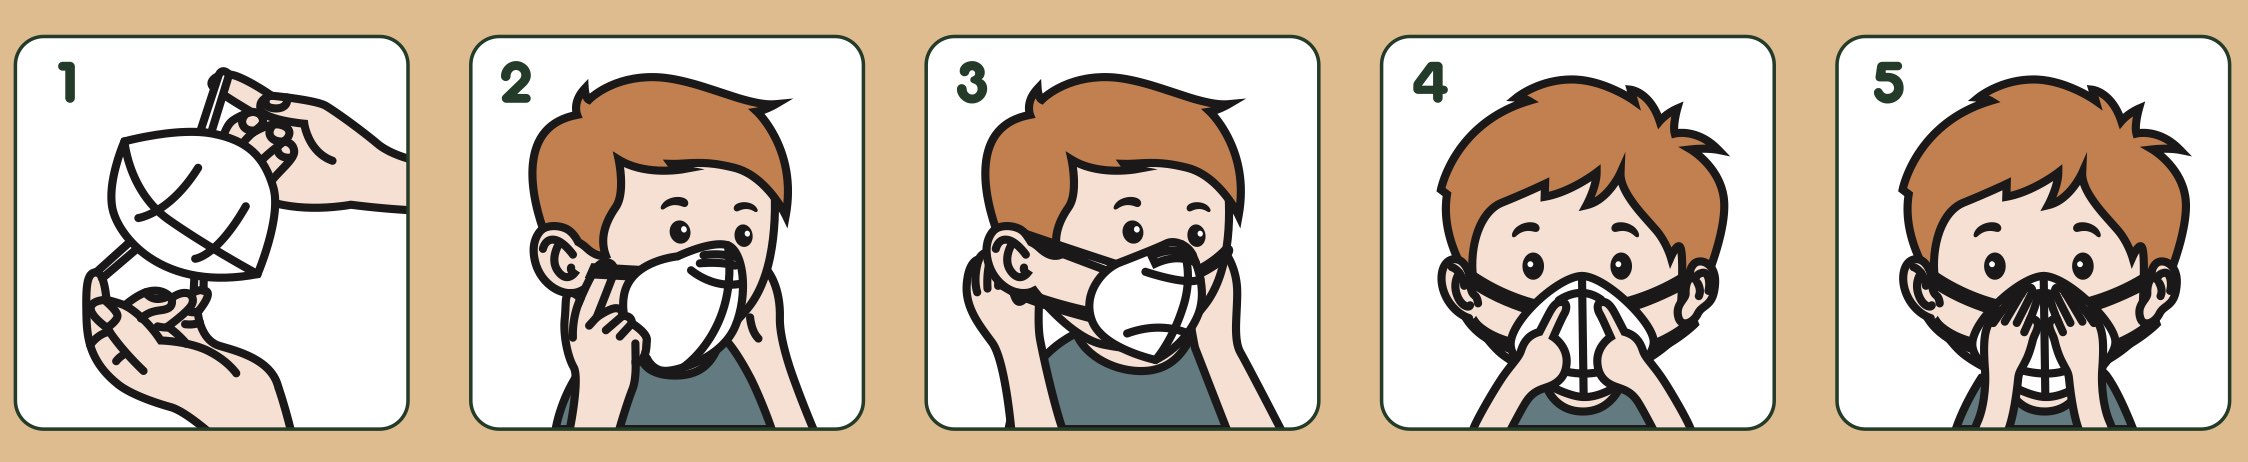 Instructions for placing an FFP2 Mask in children